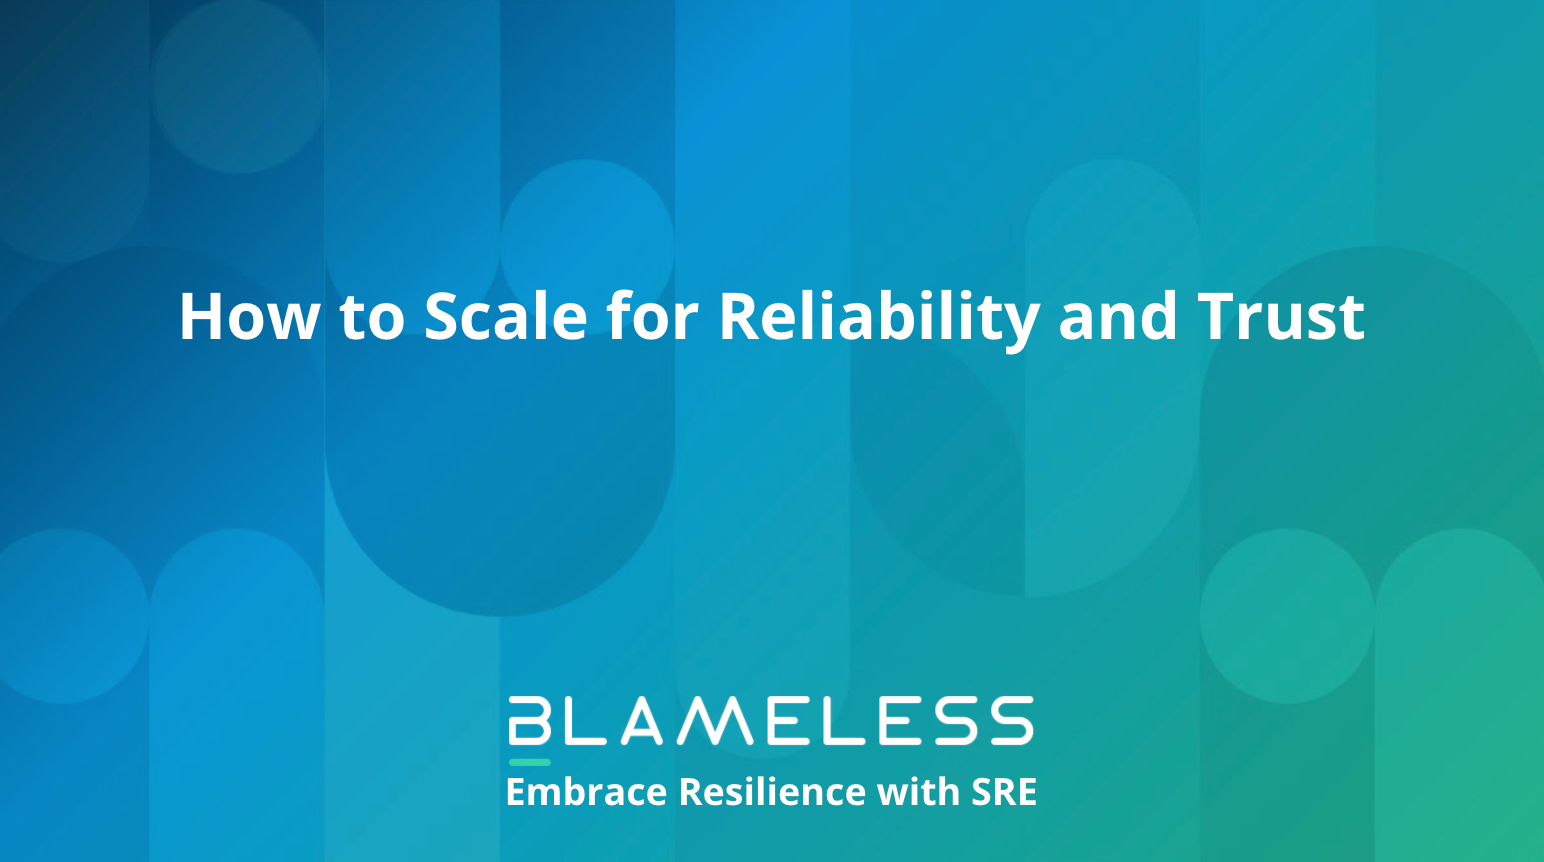 """""""How to Scale for Reliability and Trust"""" white text on blue background."""